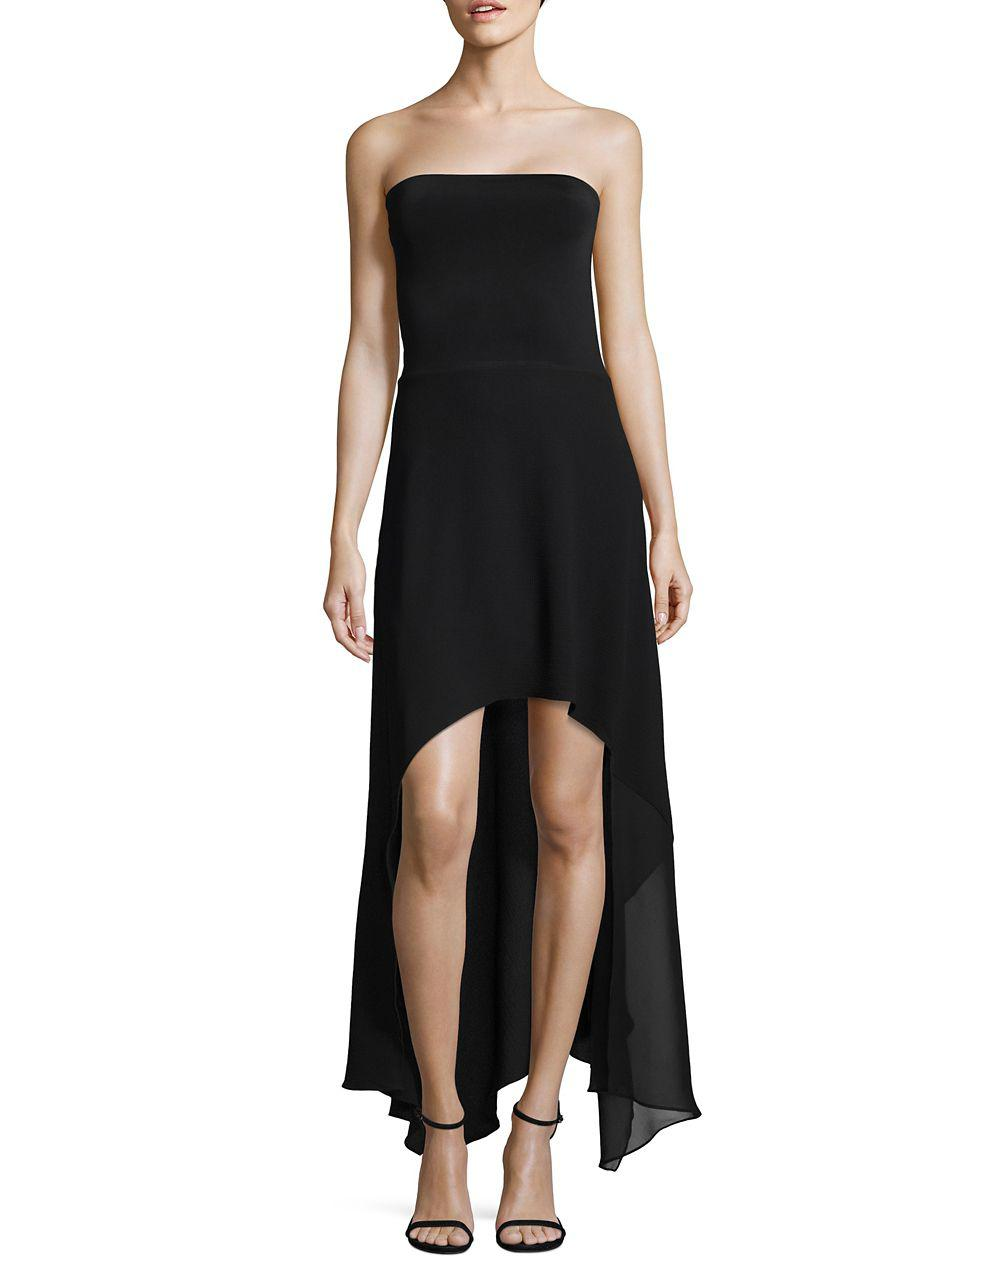 Lyst - Lord & Taylor Strapless Hi-lo Dress in Black